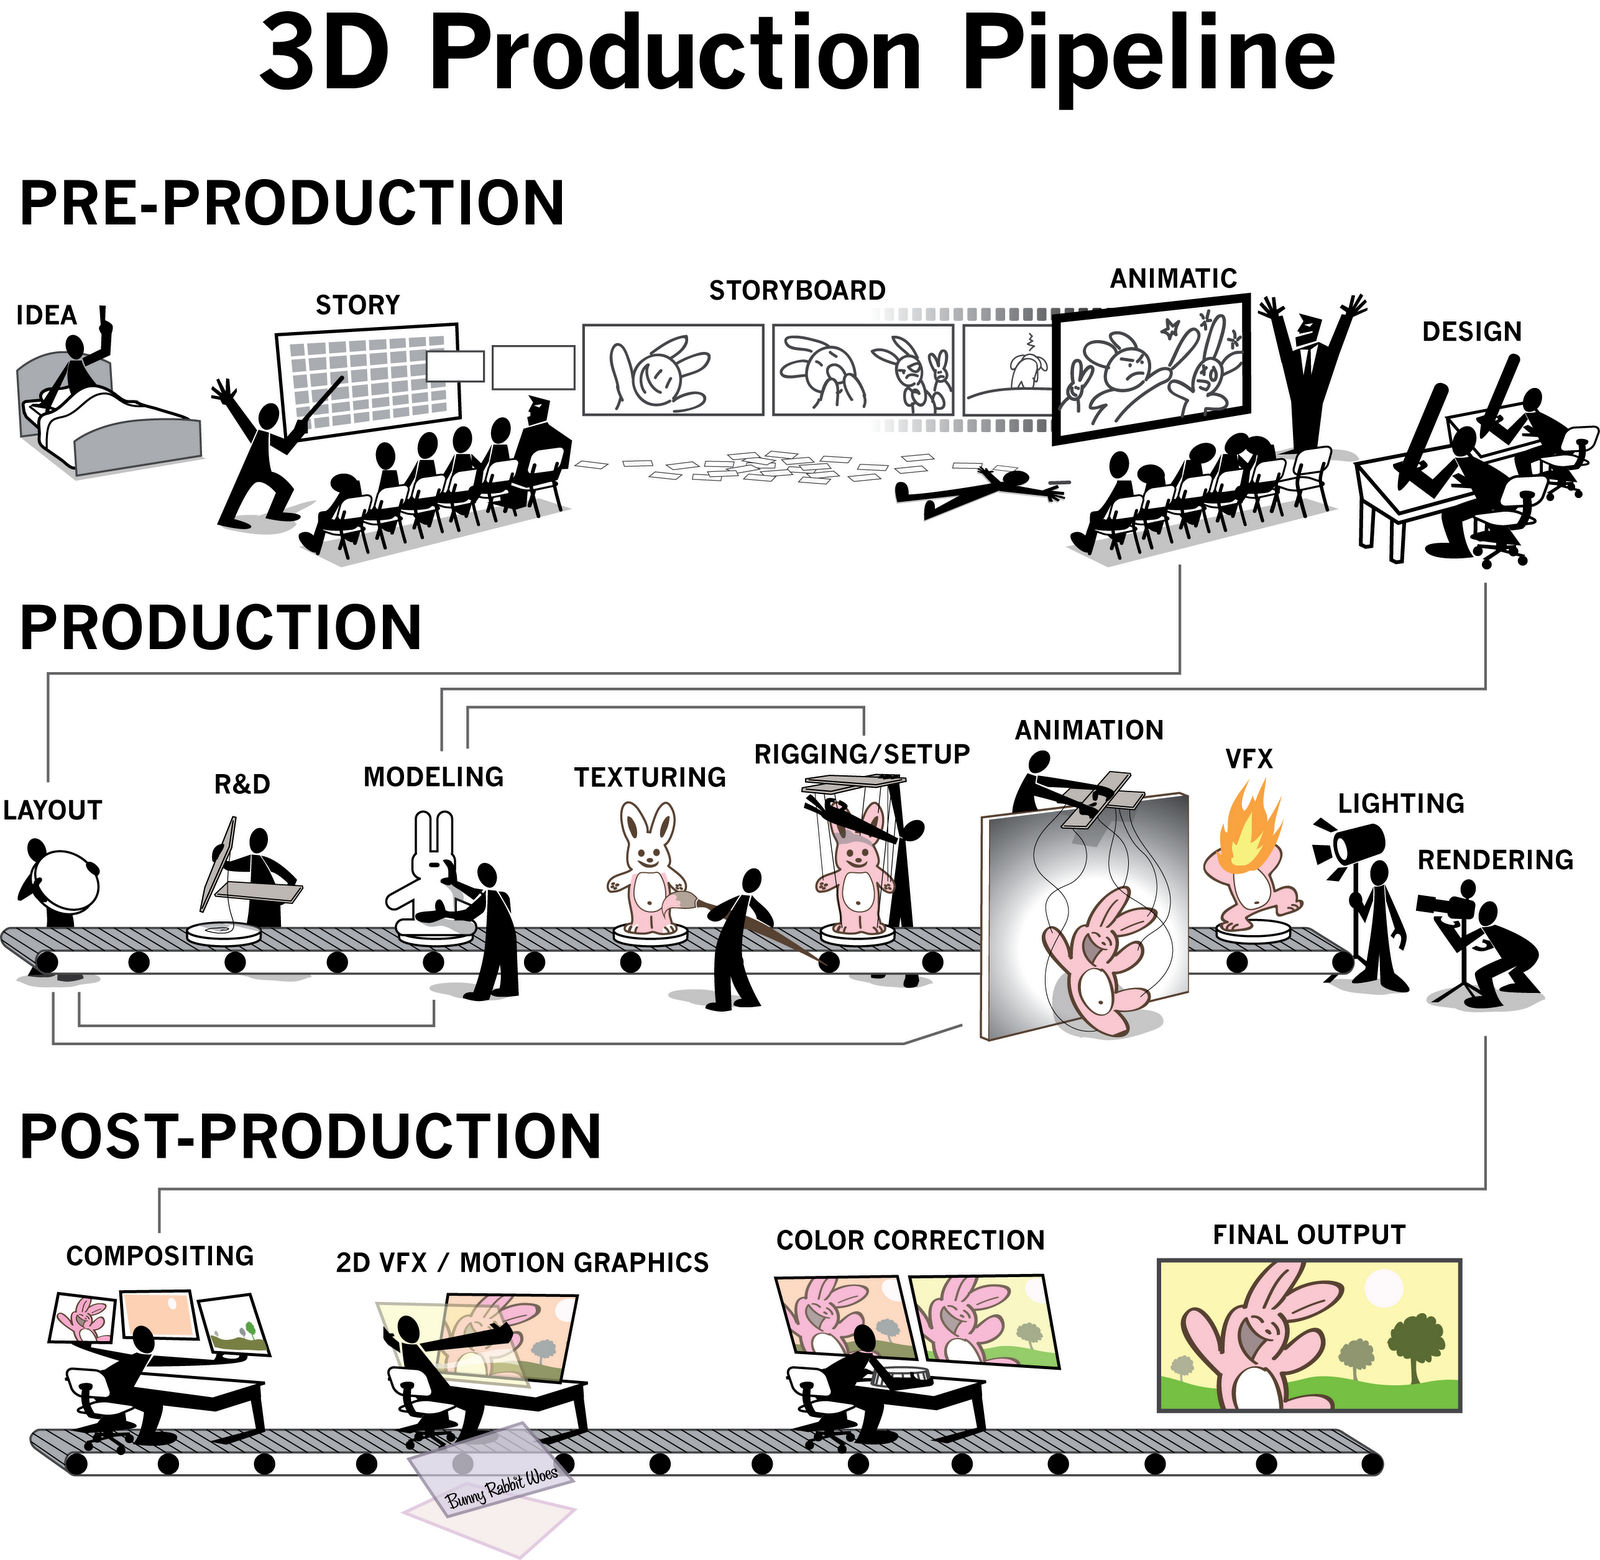 Folksonomy | Illustration Showing 3D Animation Production ...